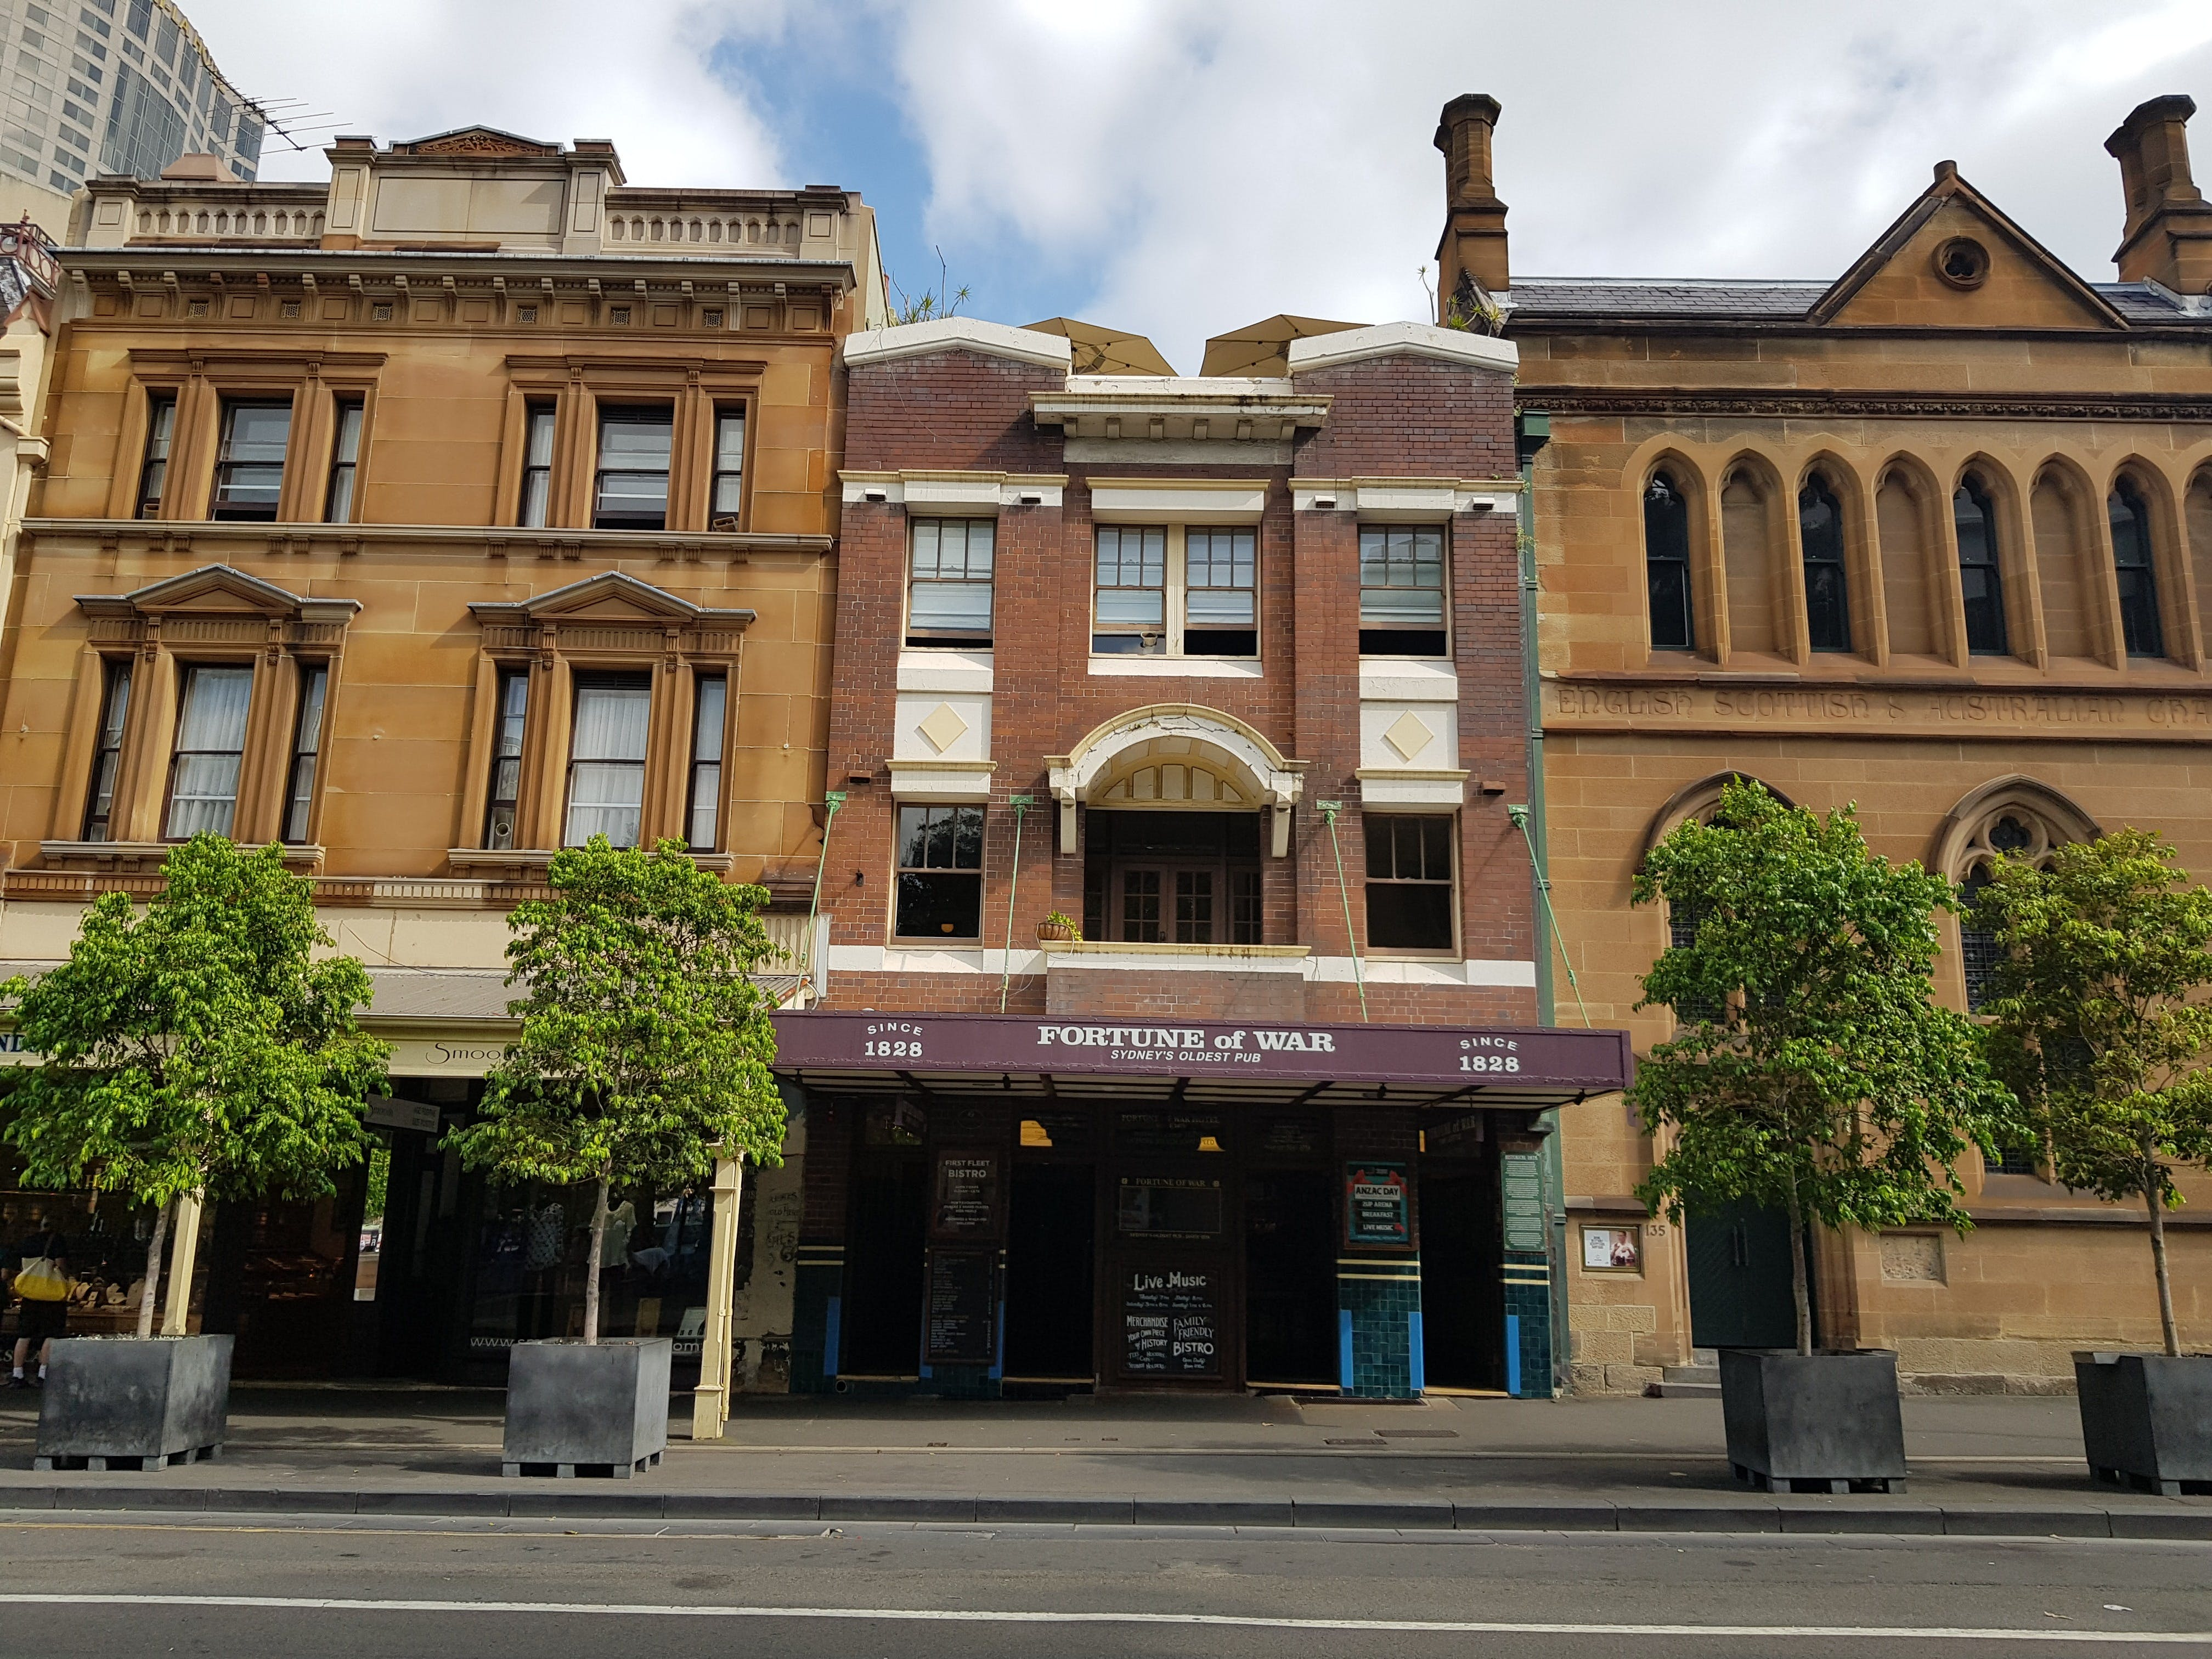 Fortune of War front facade, facing George Street.